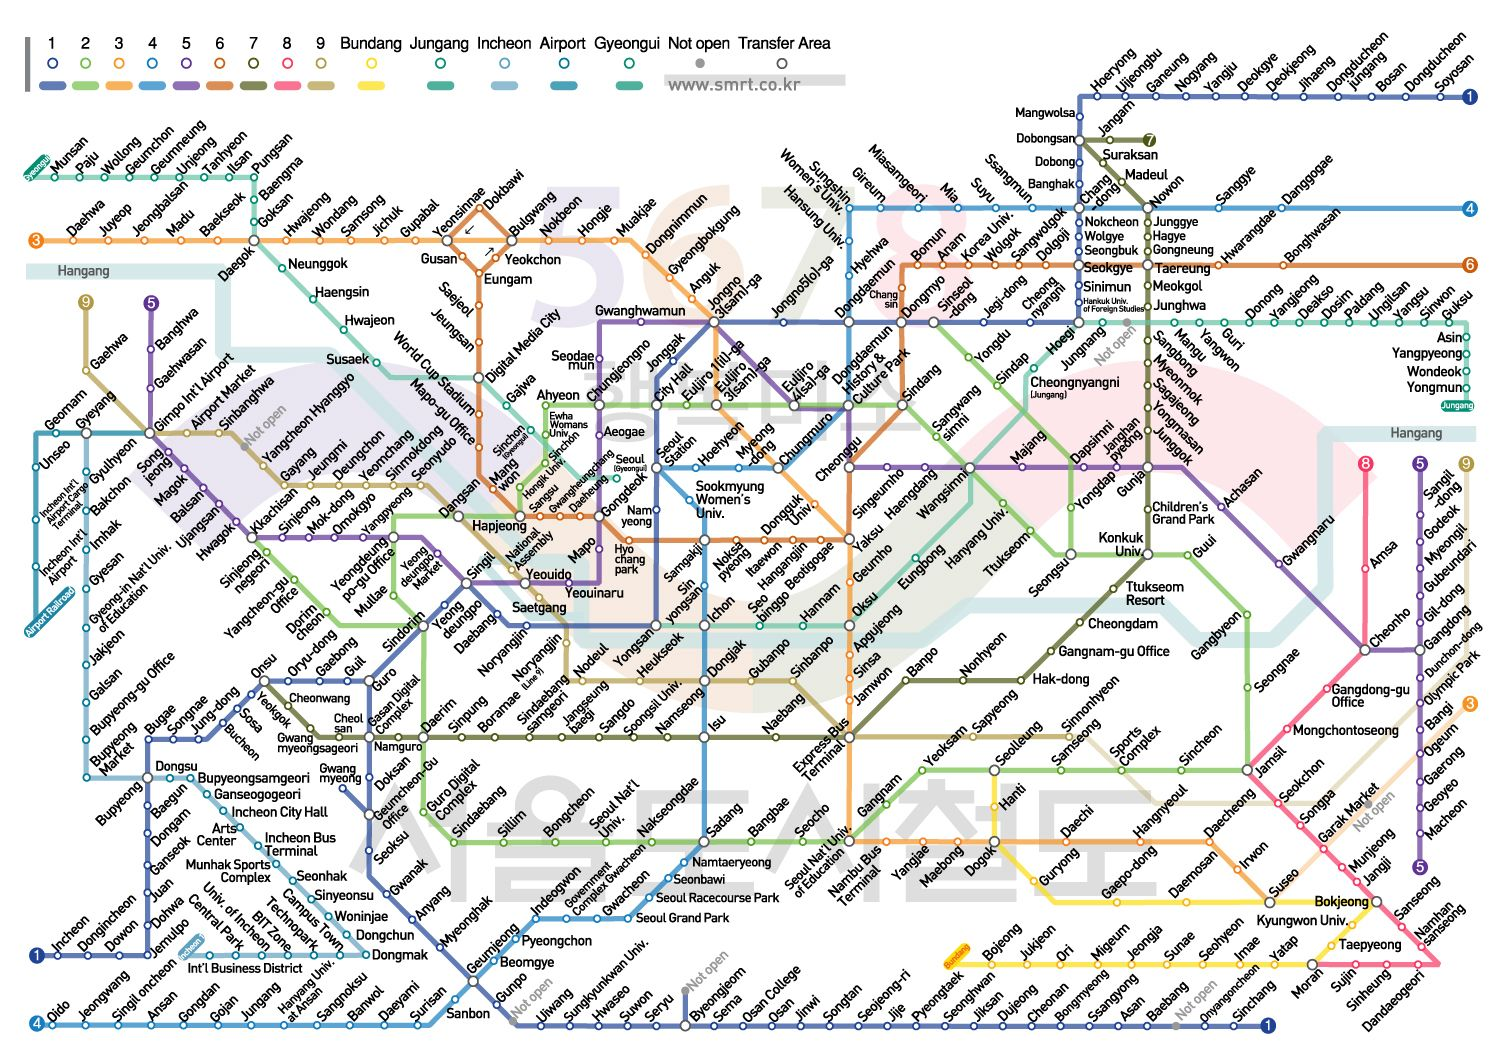 Tokyo Subway Map In English In The Station.Seoul Korea Metro Map English I Can T Believe How Much It S